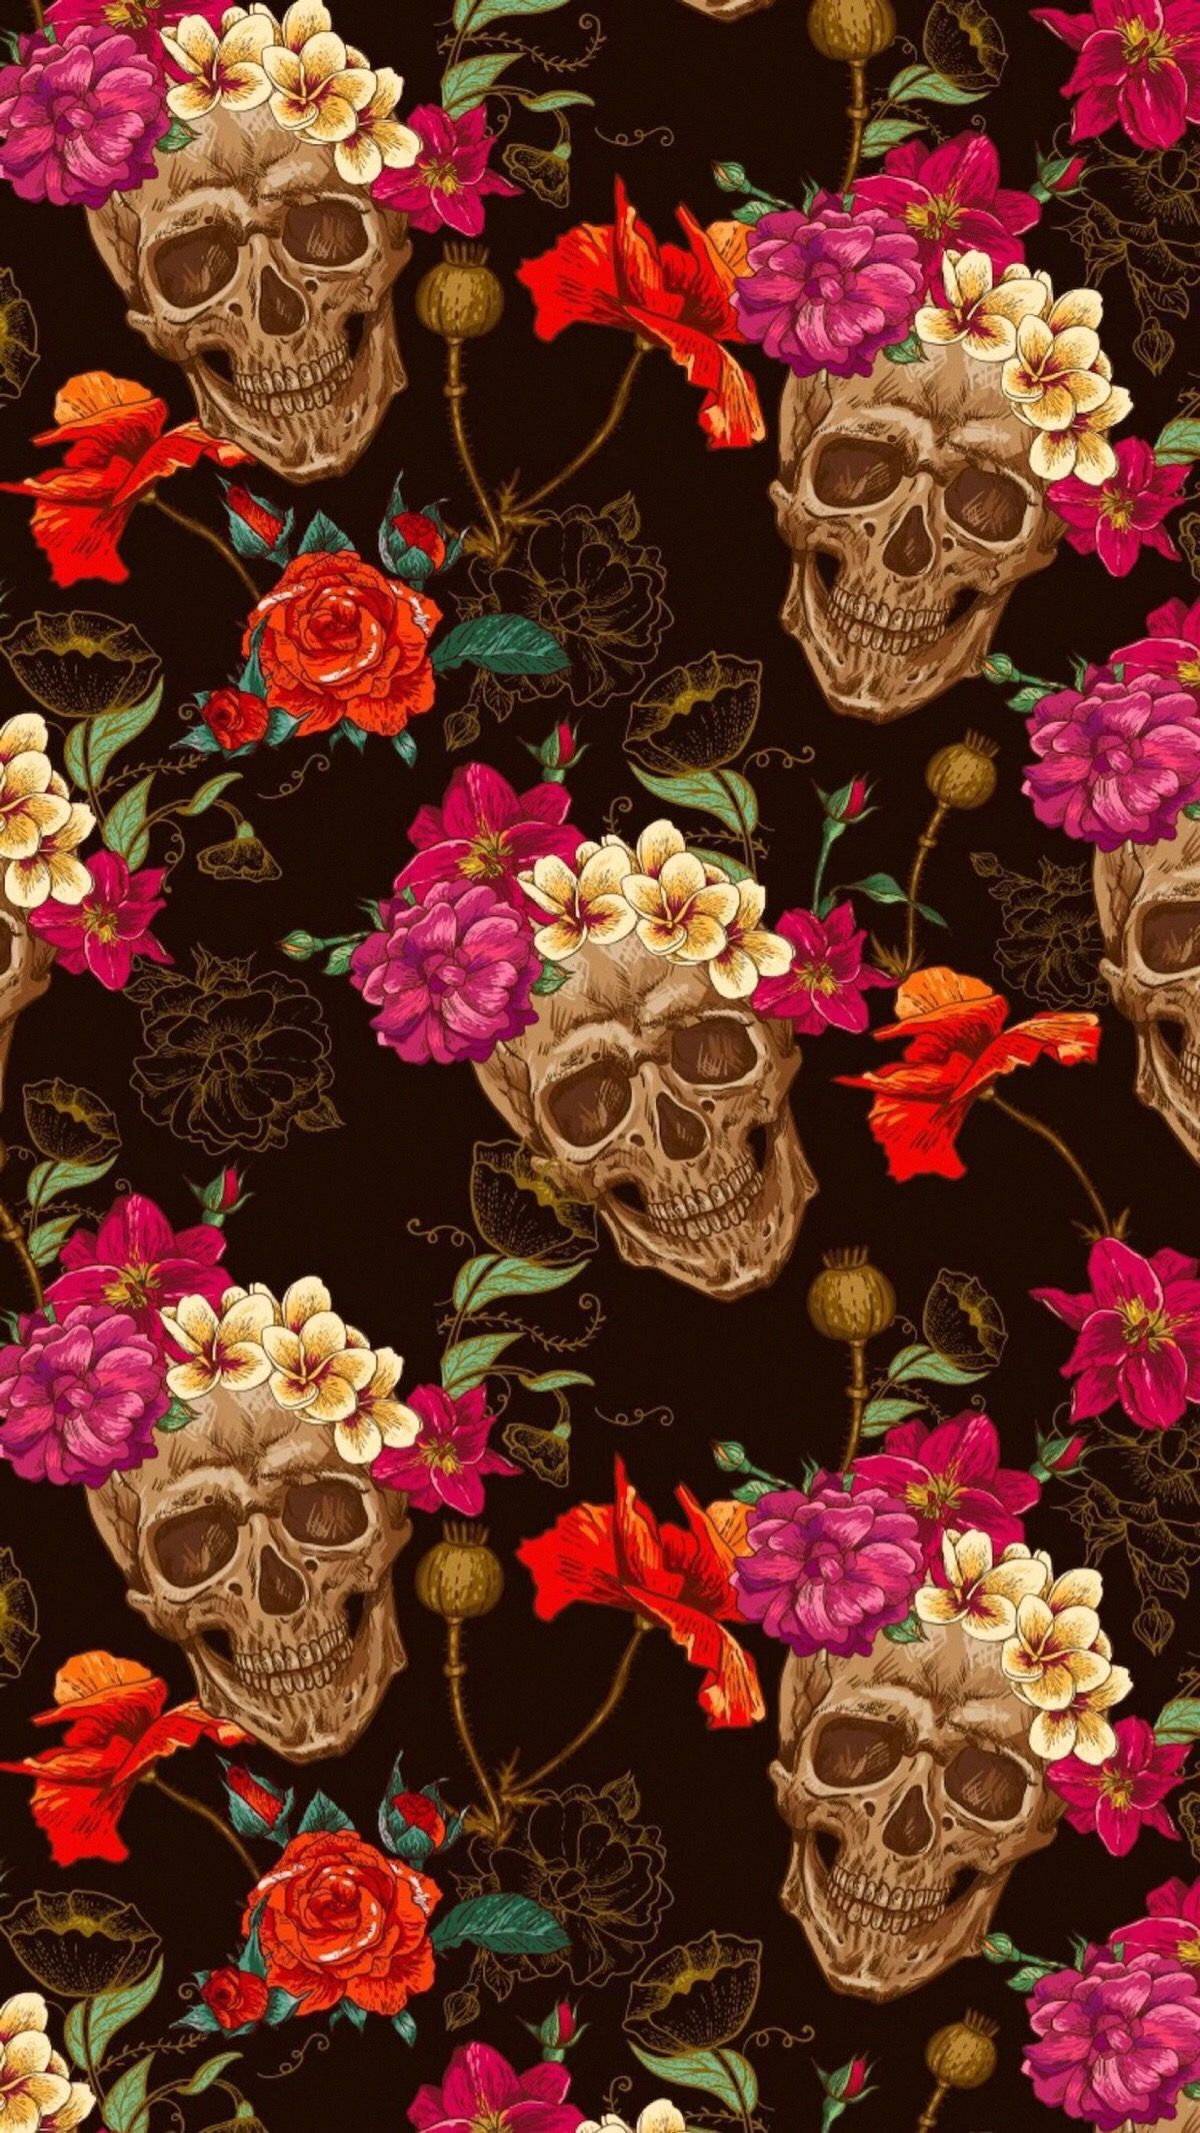 Idea By Mireina On Aesthetics Skull Wallpaper Sugar Skull